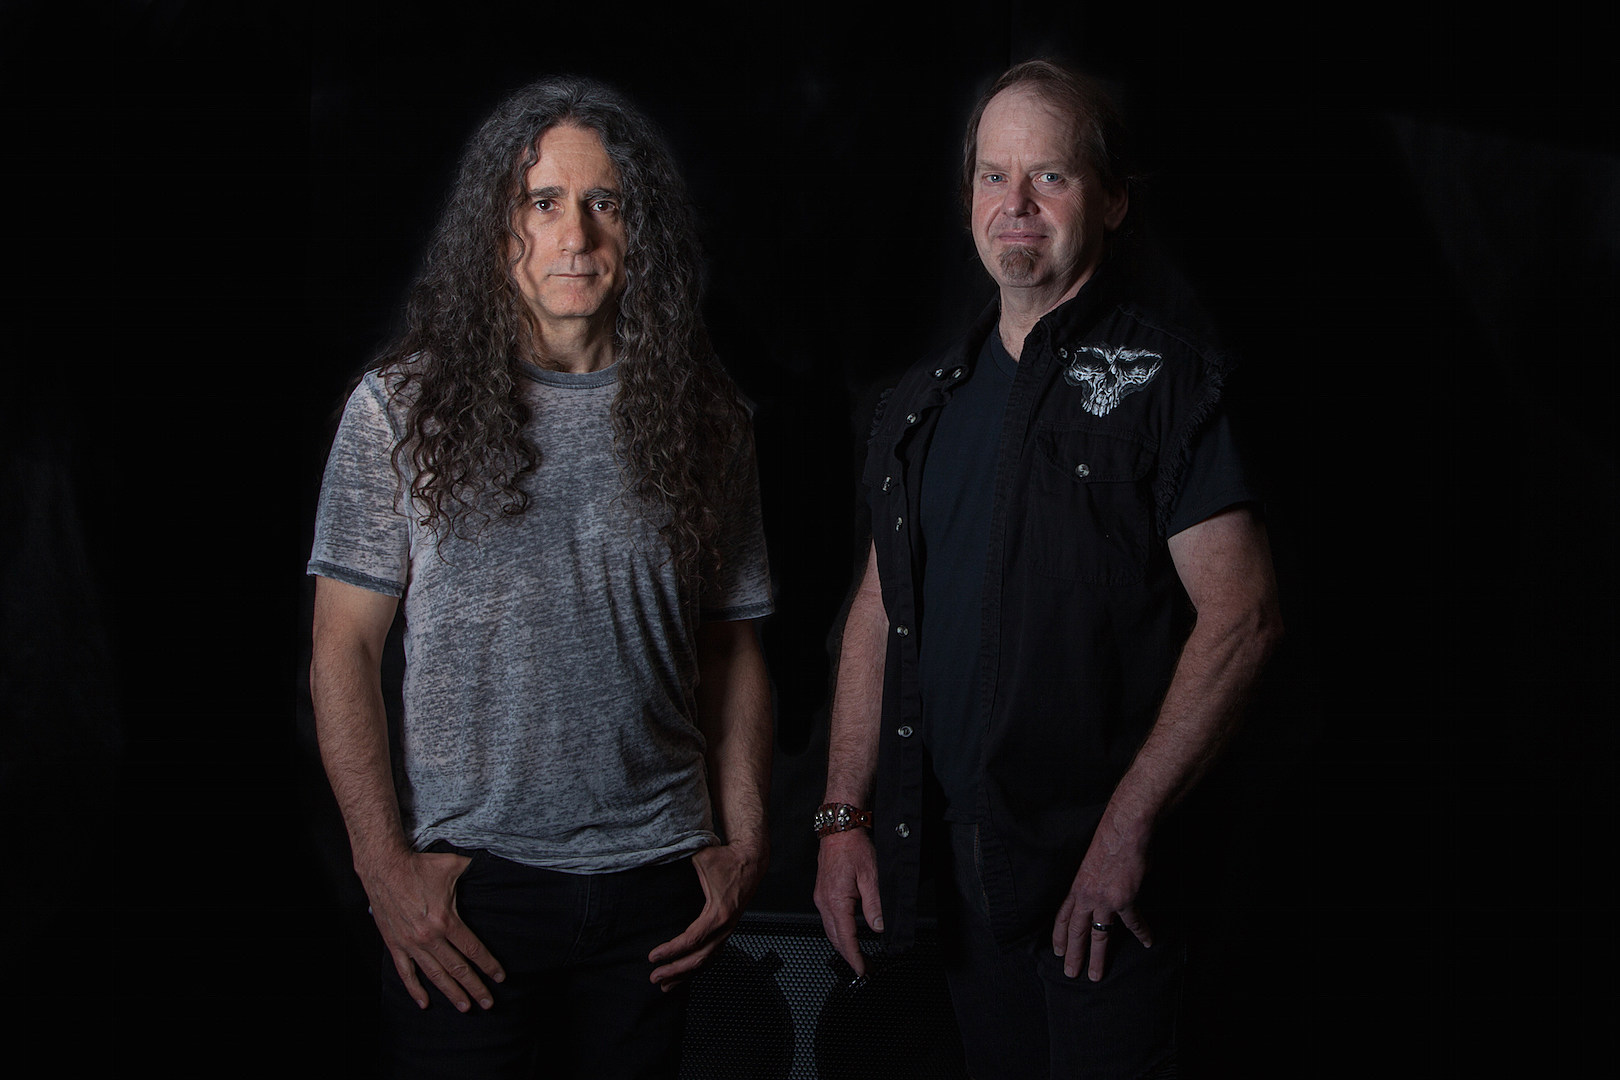 Arch / Matheos Announce 'Winter Ethereal' Album, Debut 'Straight and Narrow' Song